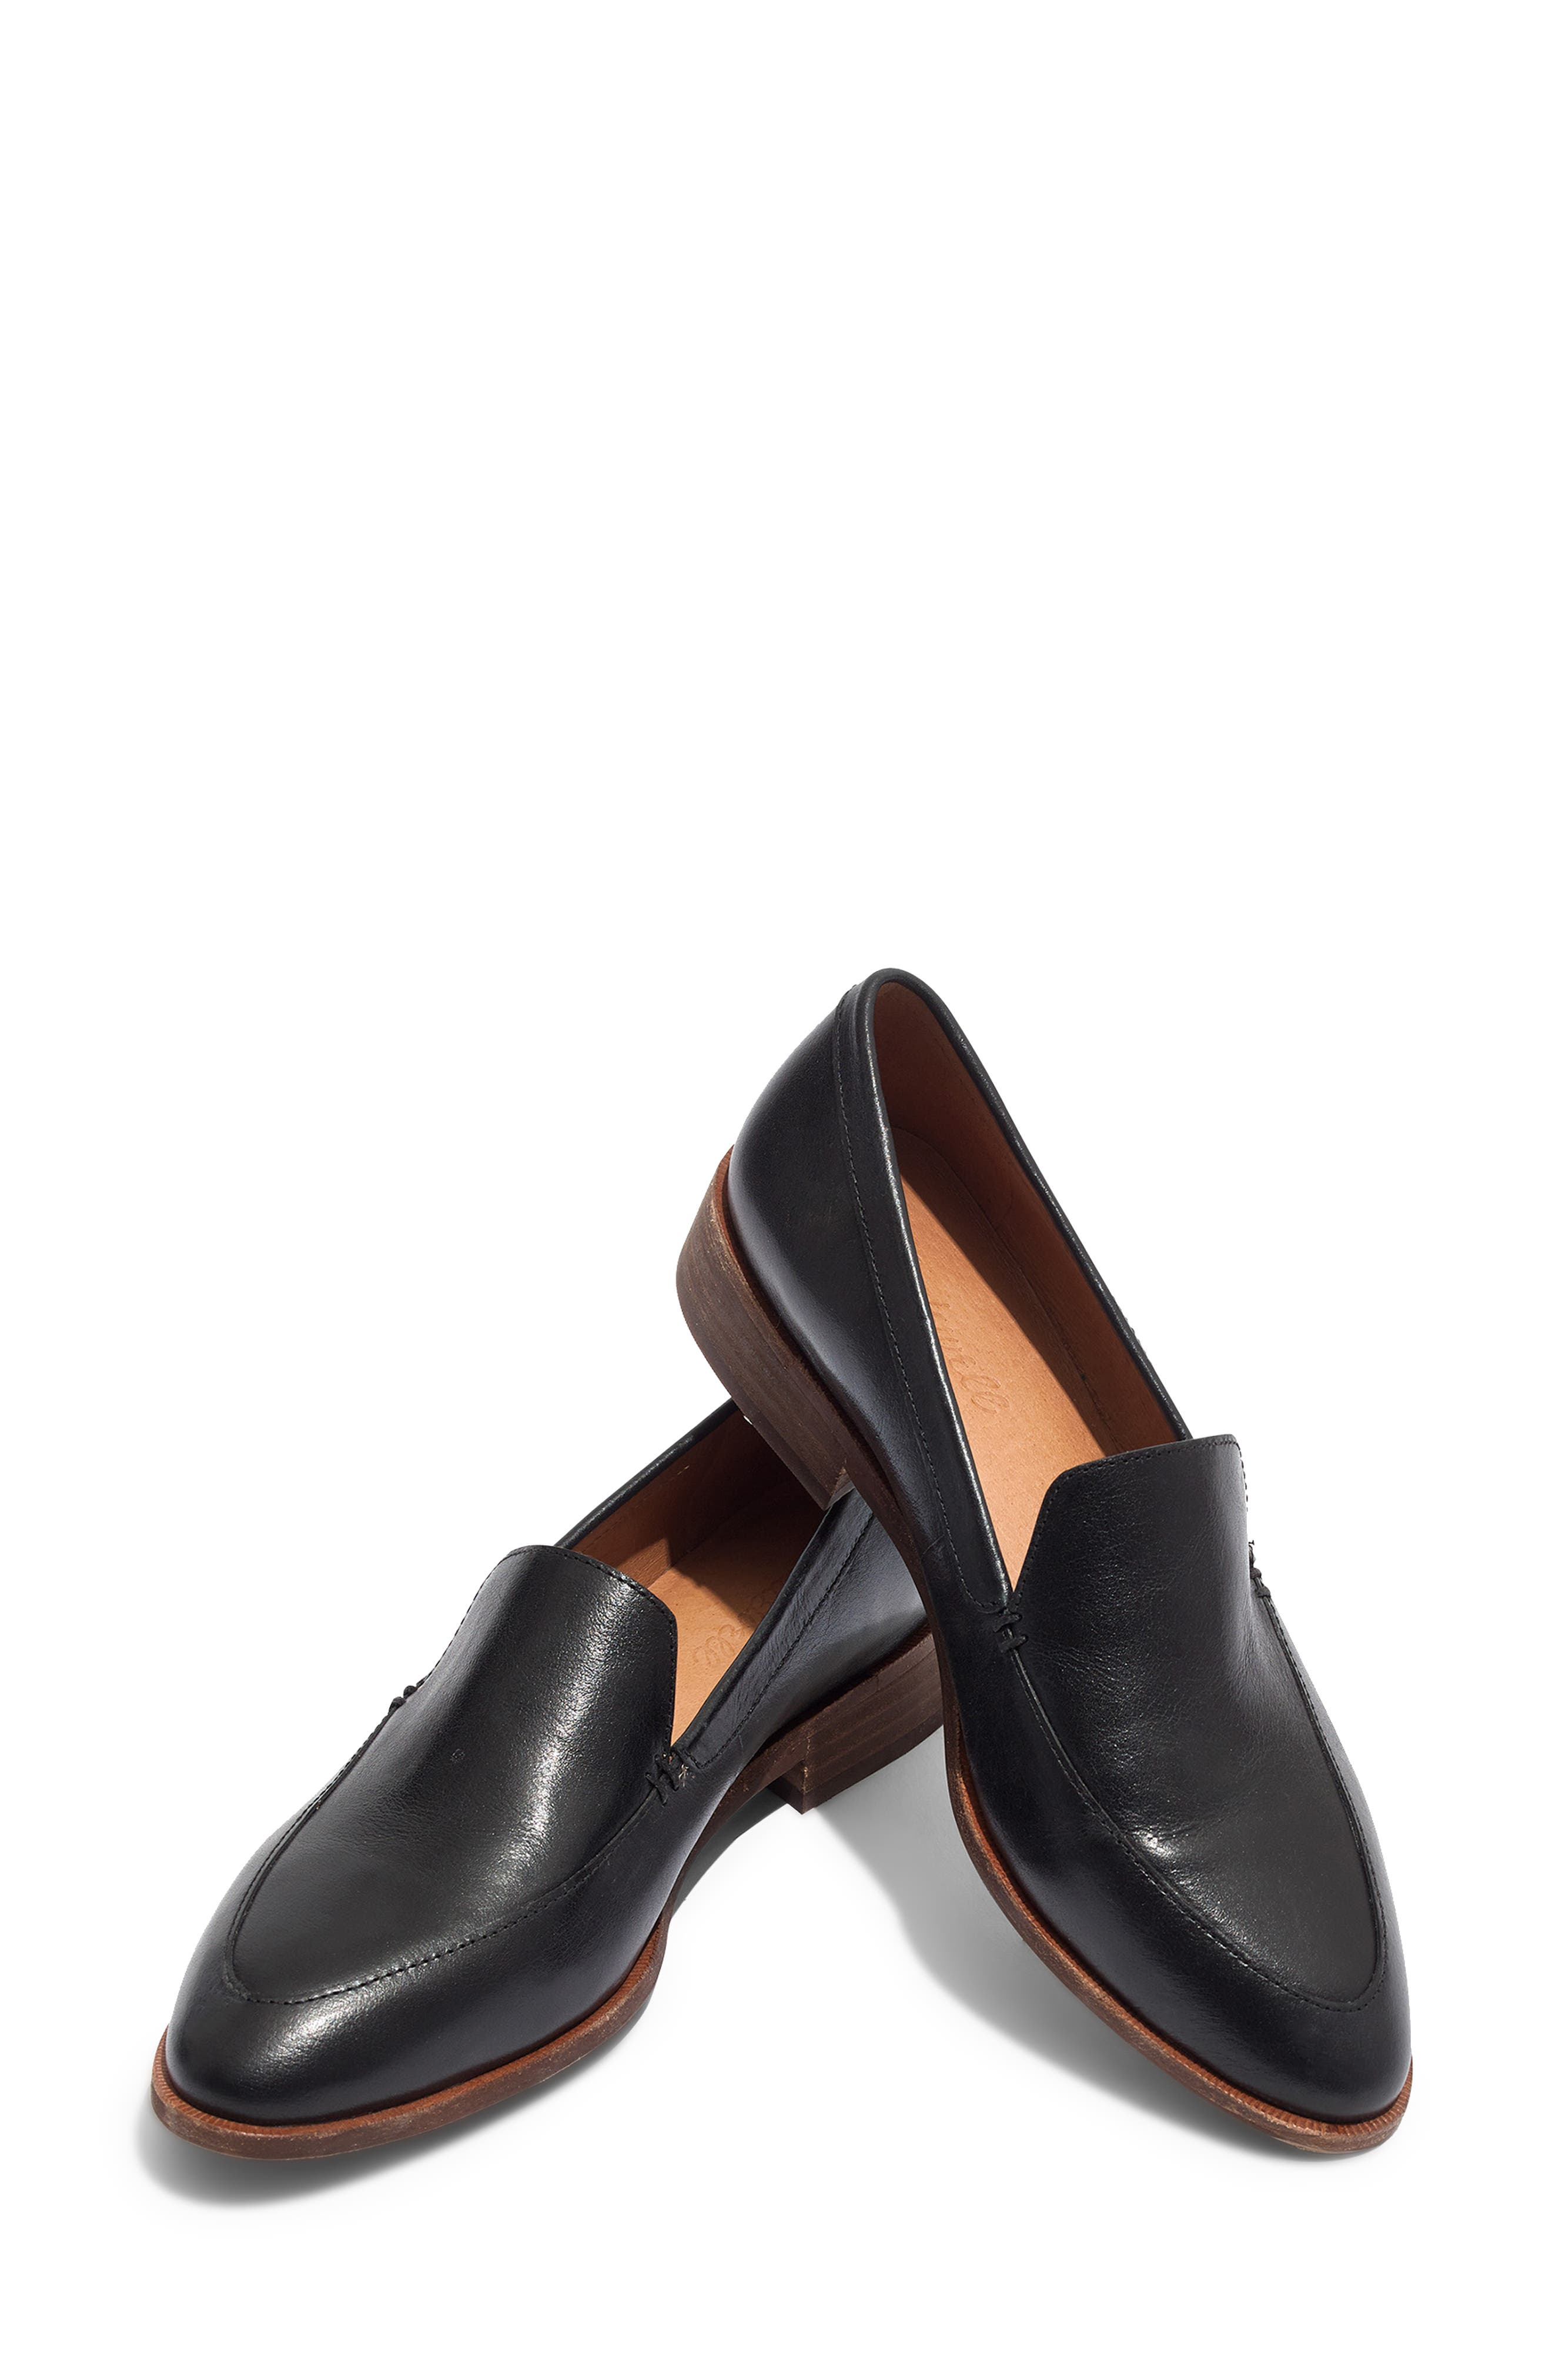 MADEWELL,                             The Frances Loafer,                             Alternate thumbnail 7, color,                             TRUE BLACK LEATHER